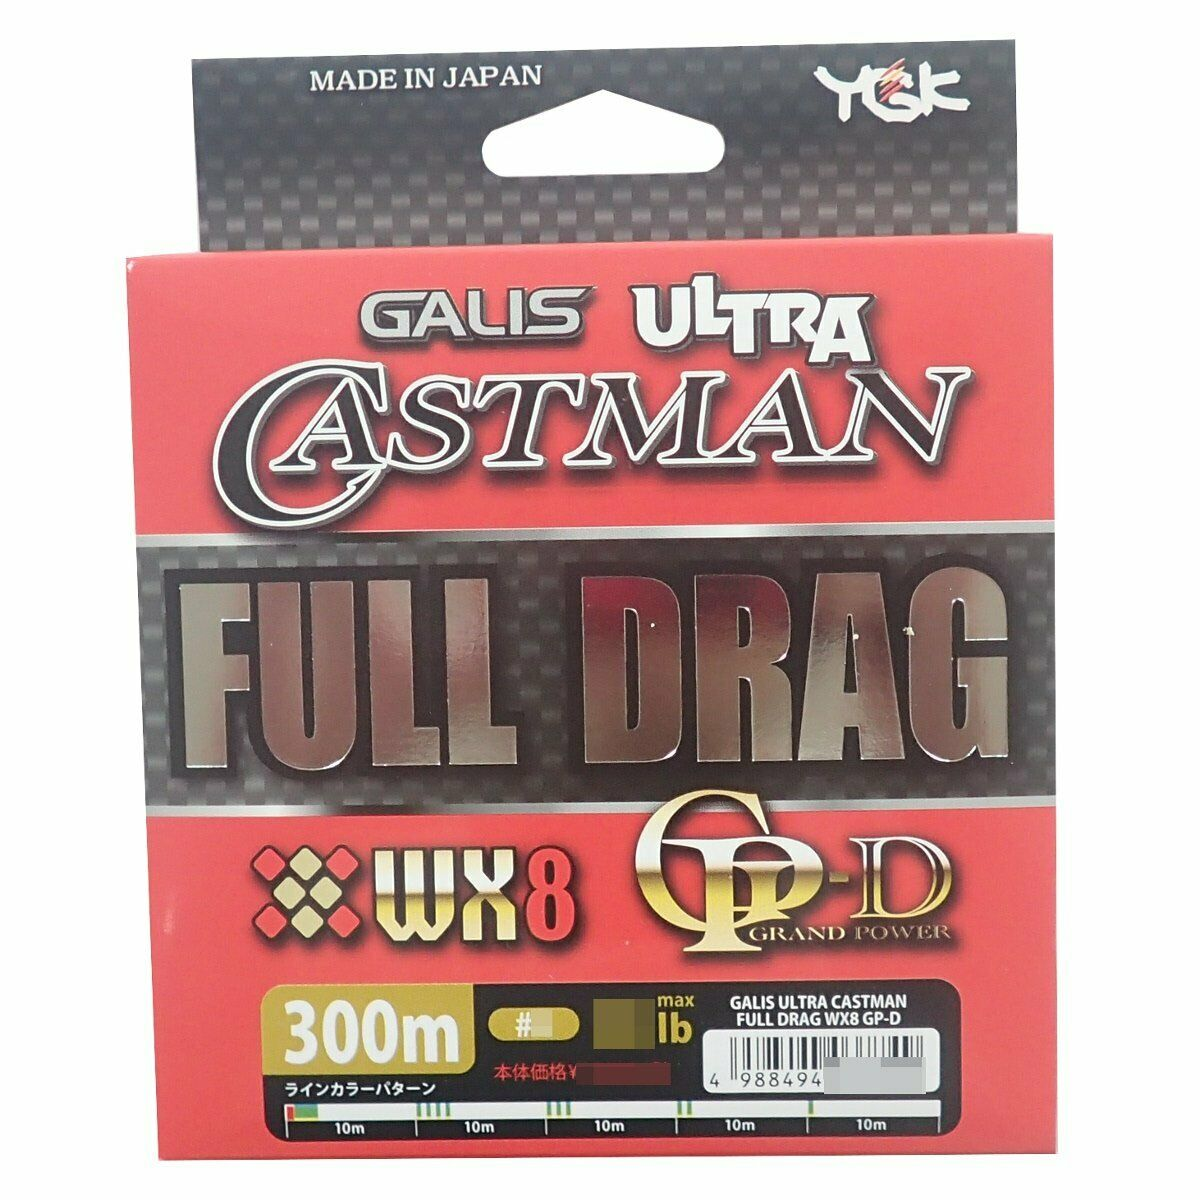 YGK Galis Ultra Castman WX 8 GP-D Fulldrag 300m 66lb Braid PE Line NEW